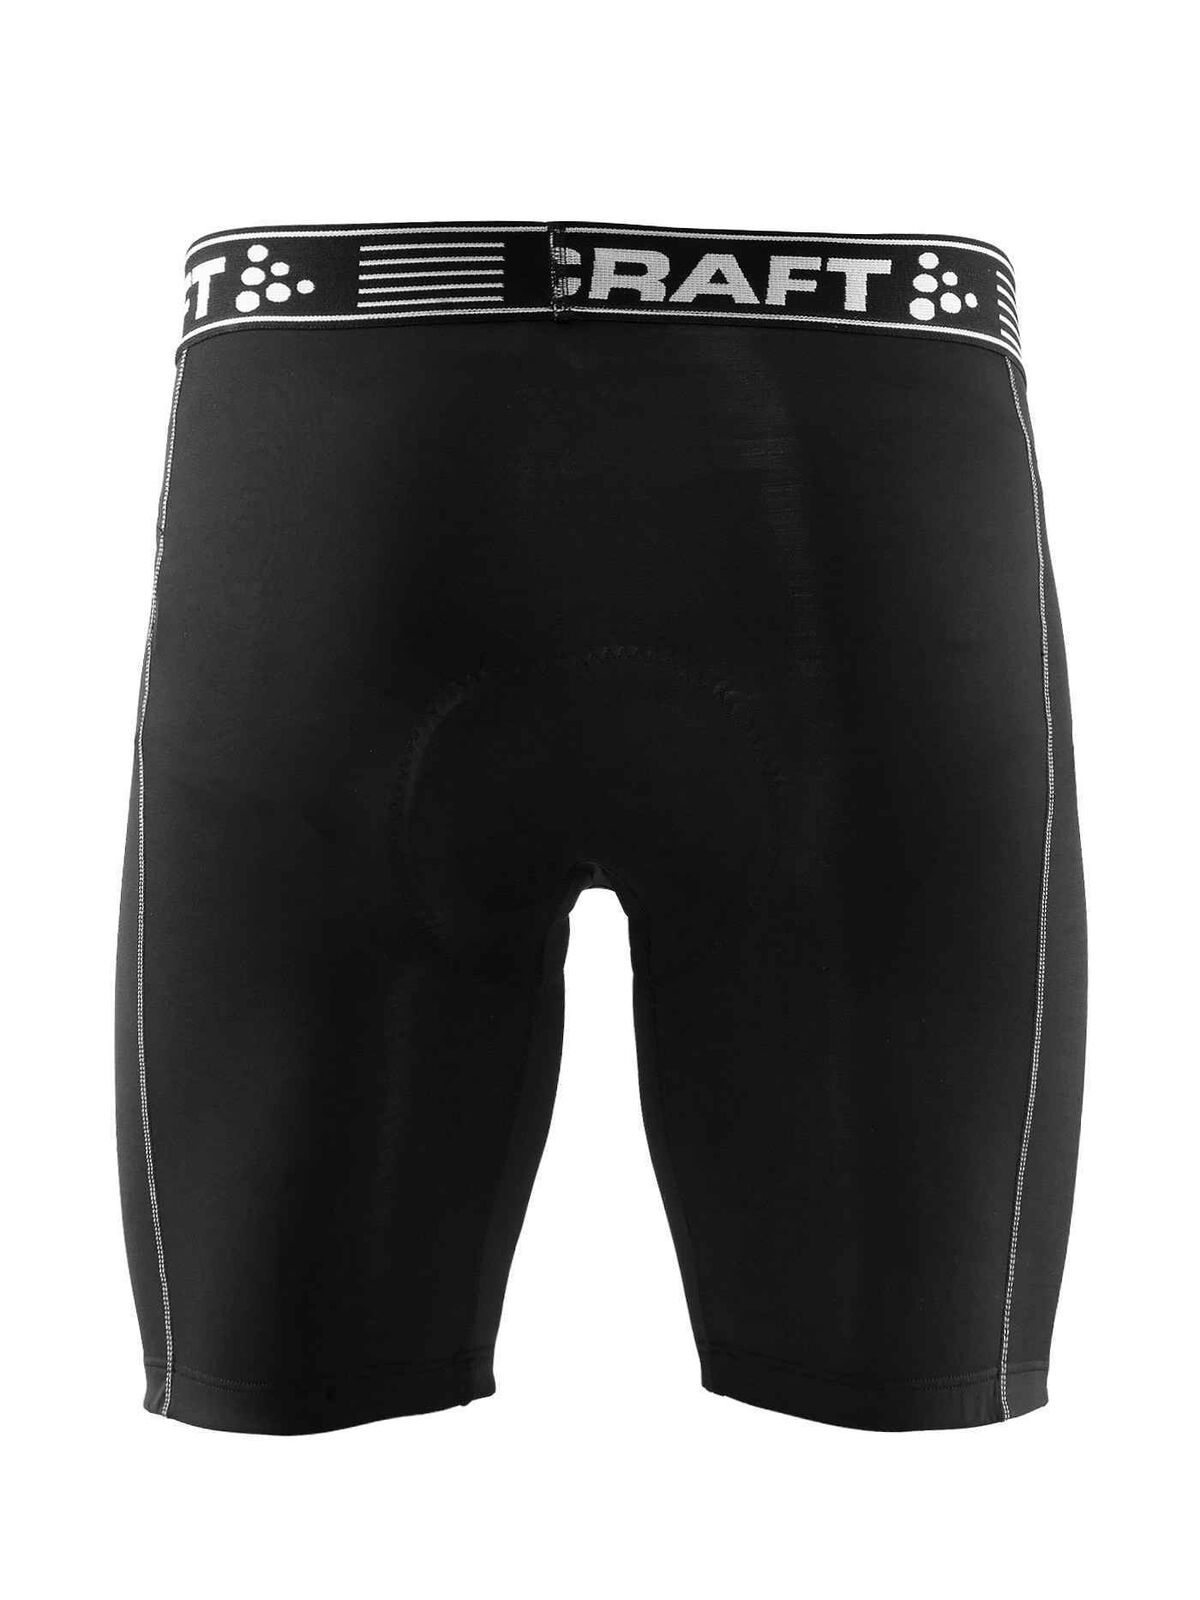 CRAFT Herren Bike Bike Bike Shorts Greatness NEU & OVP 526e37